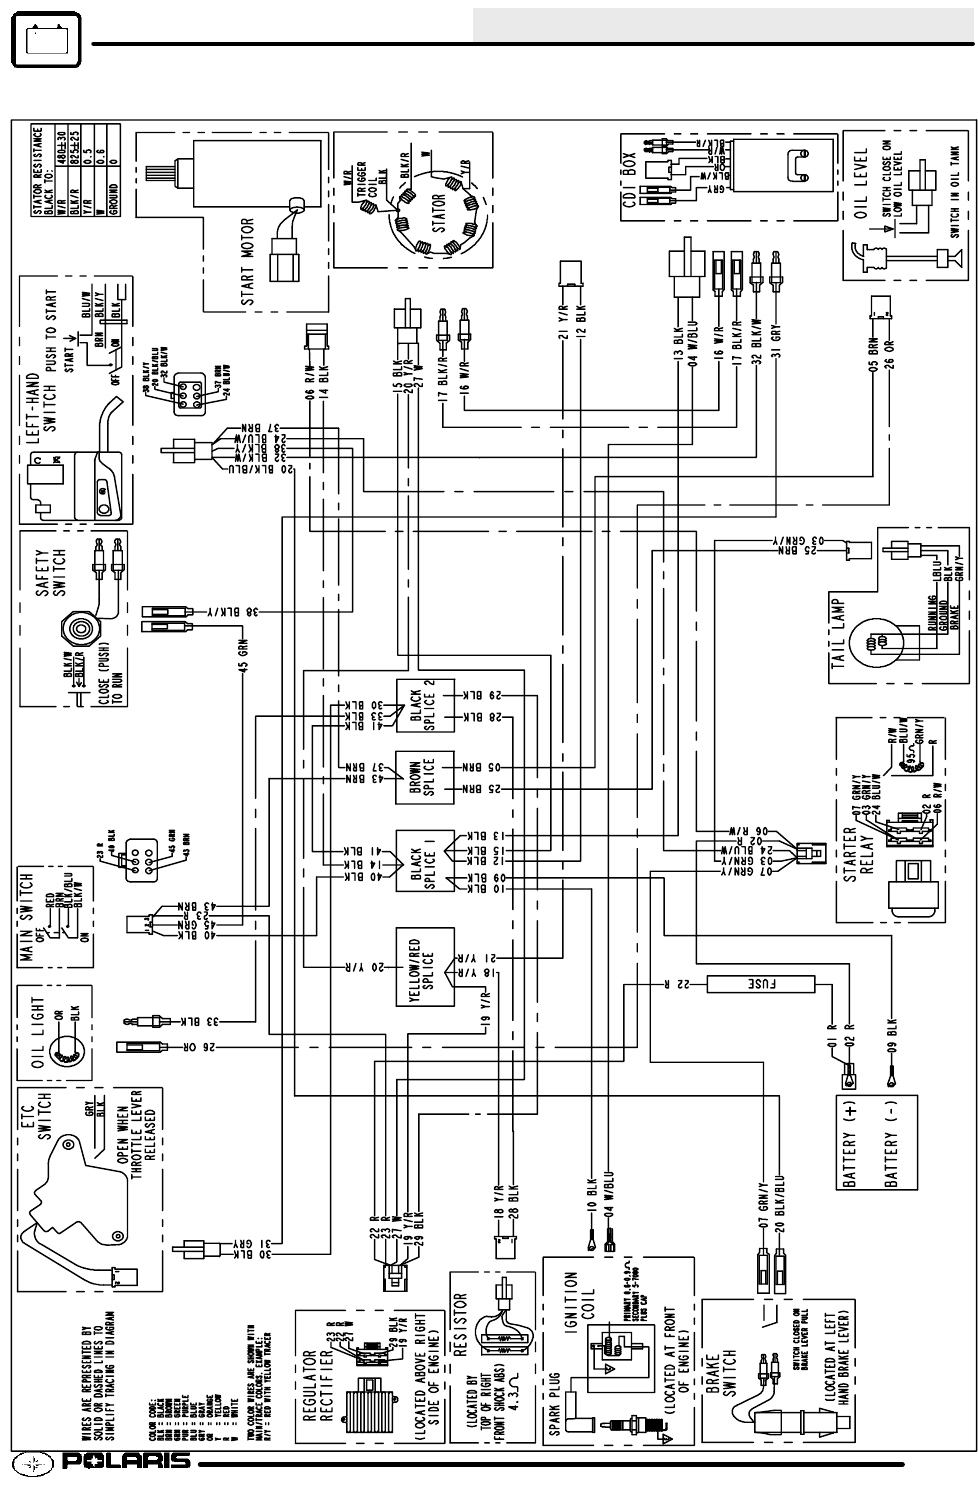 2003 polaris predator 90 wiring diagram